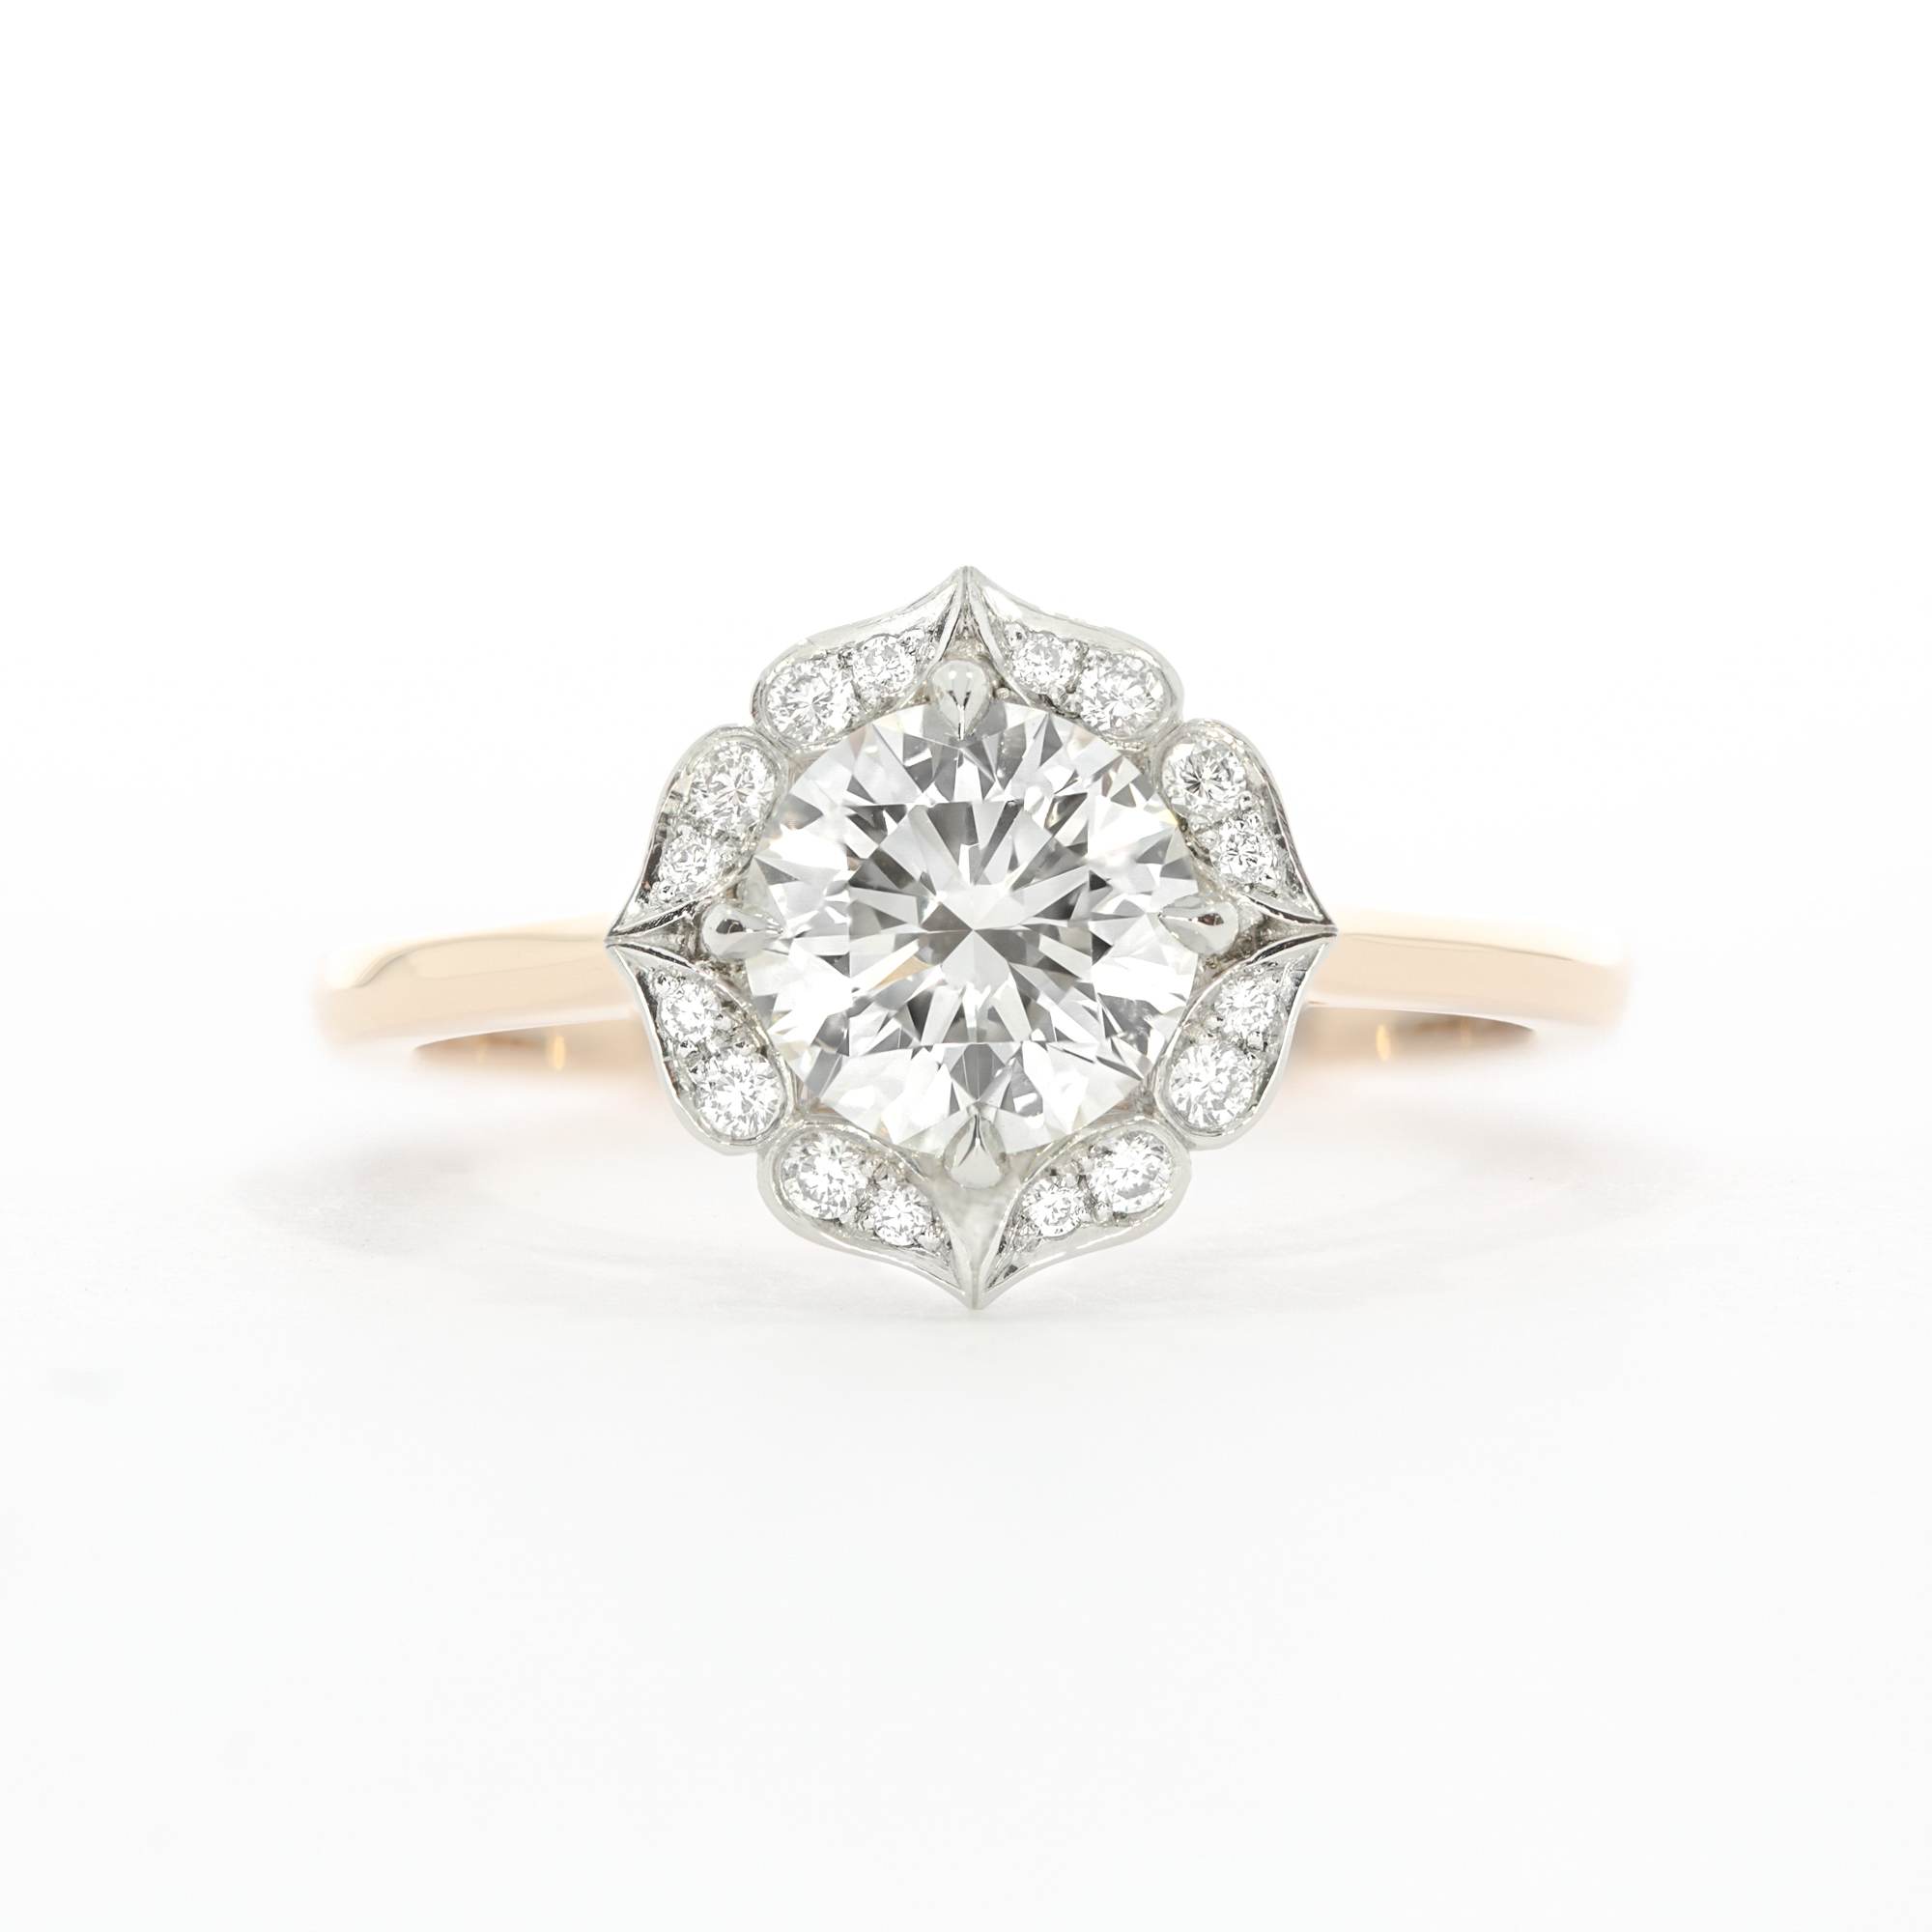 The  Rainer  engagement ring